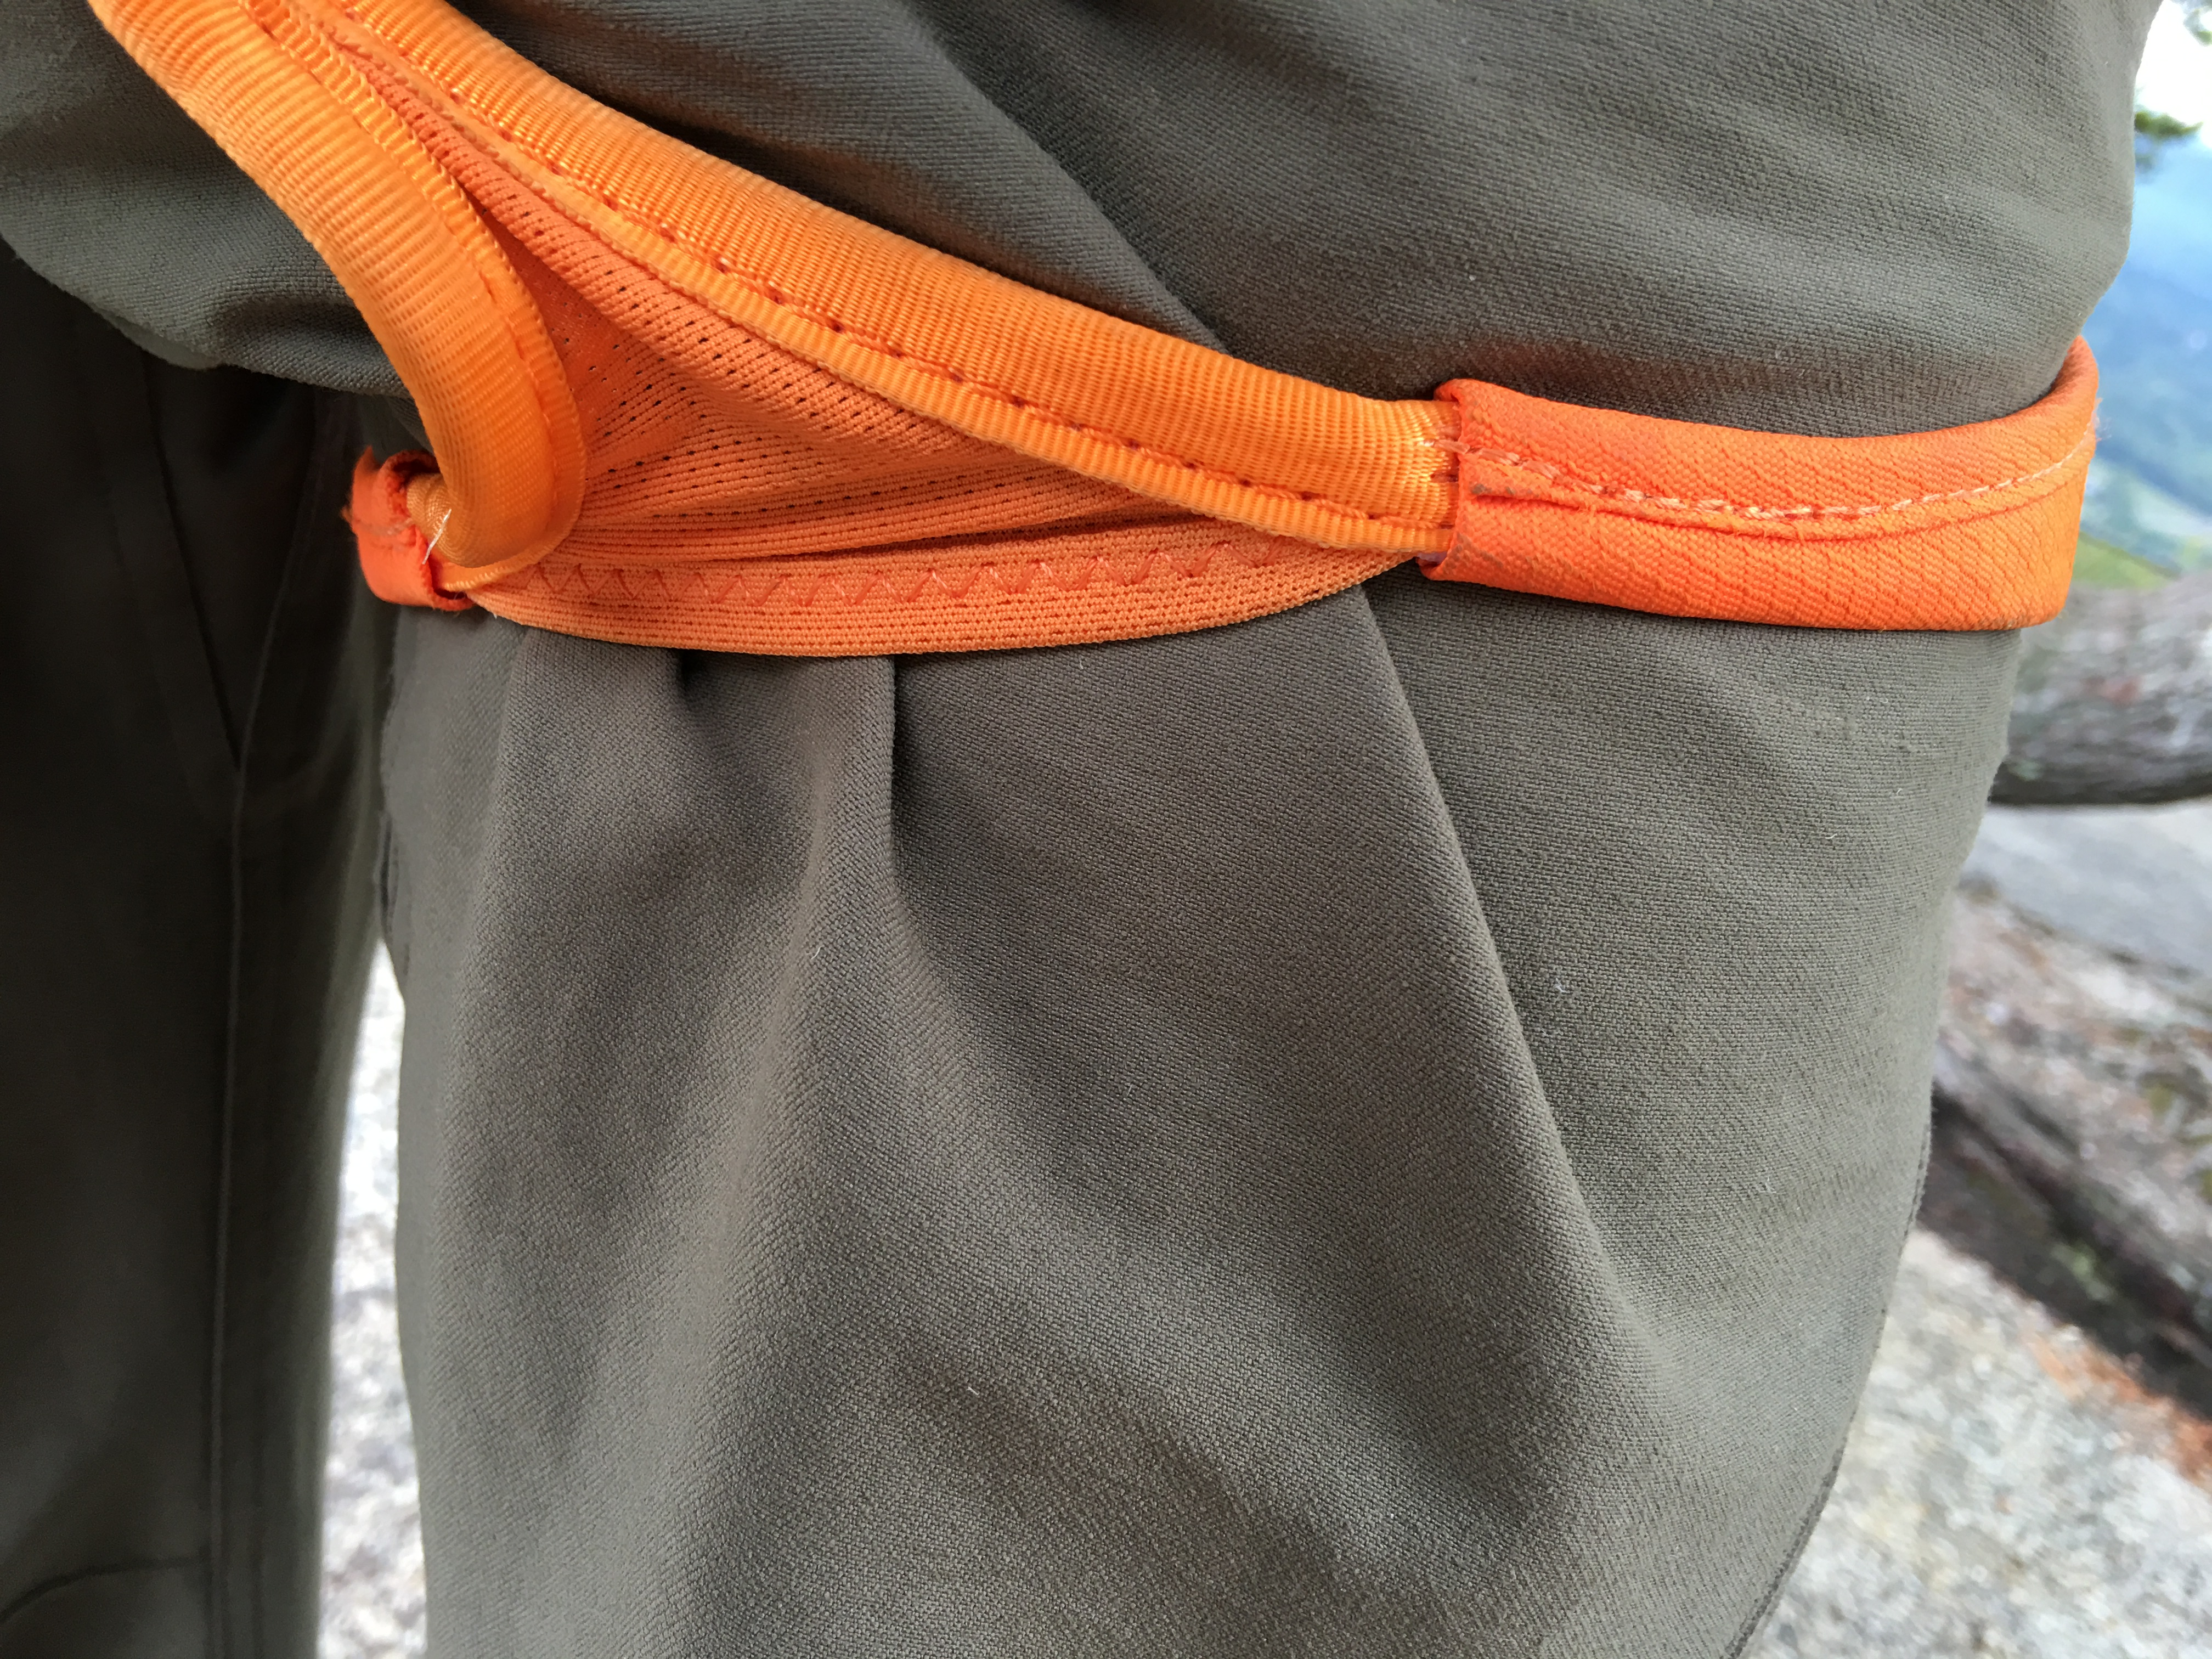 Petzl Sitta Review